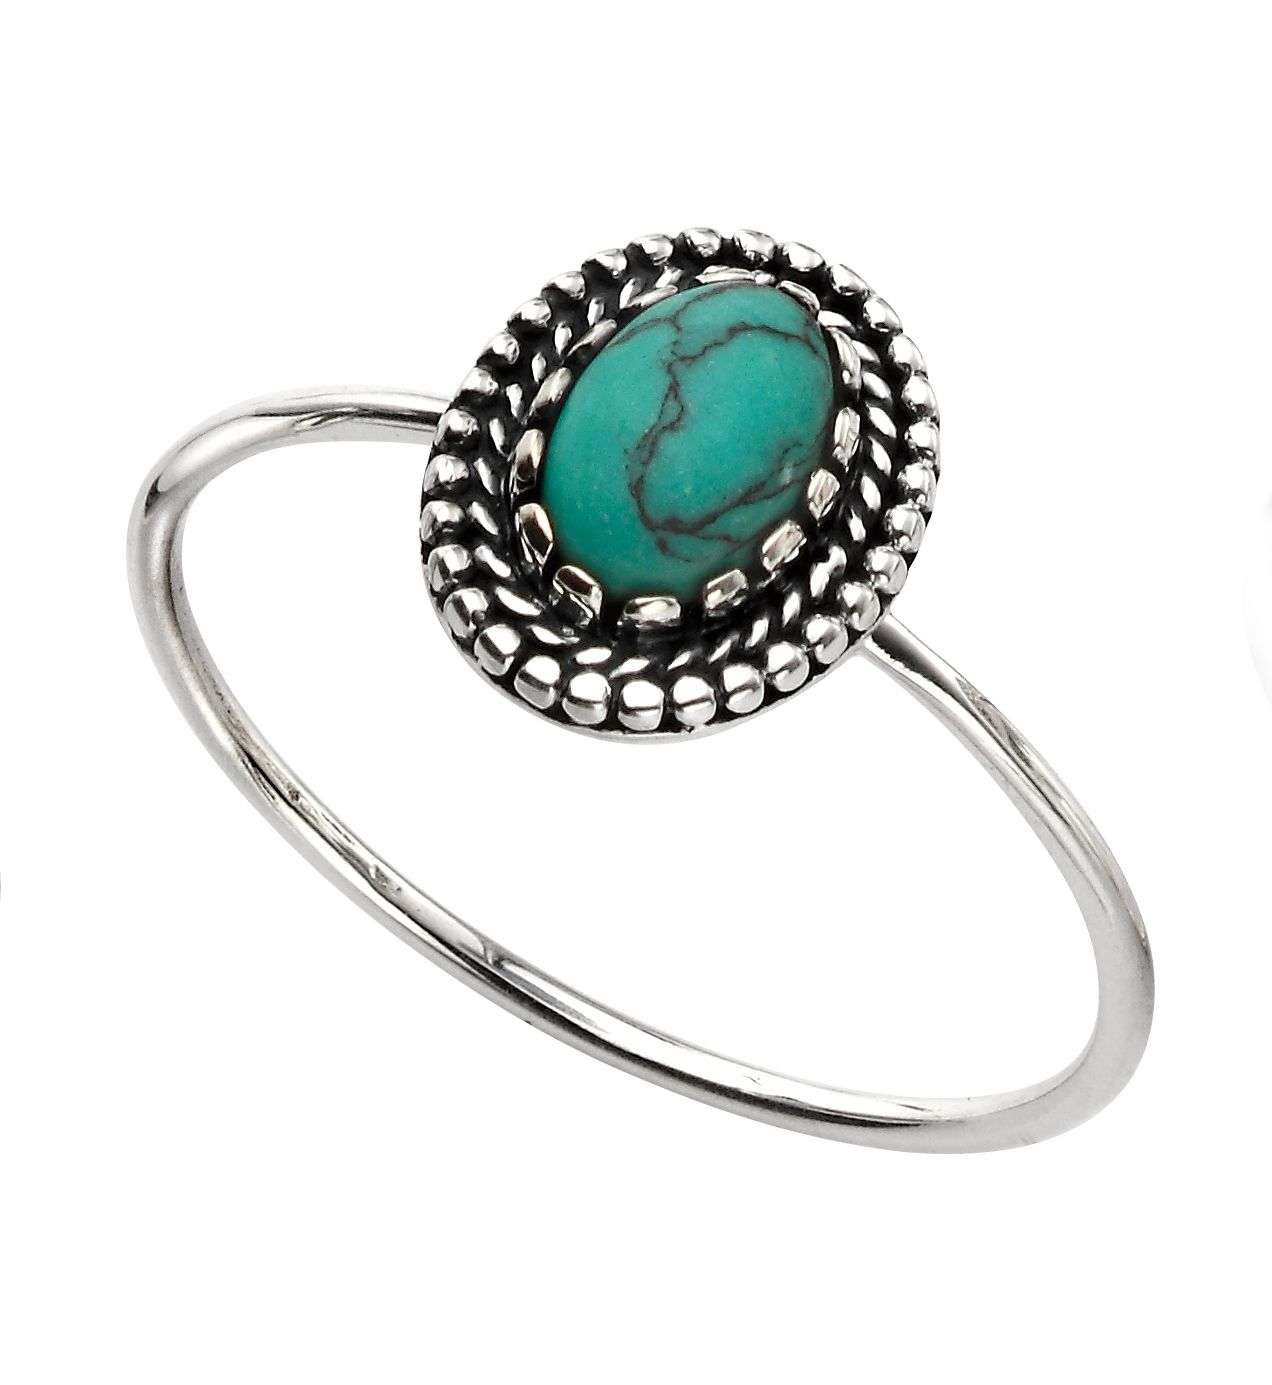 Elements Silver Womens 925 Sterling Silver Turquoise Oxidised Design Ring